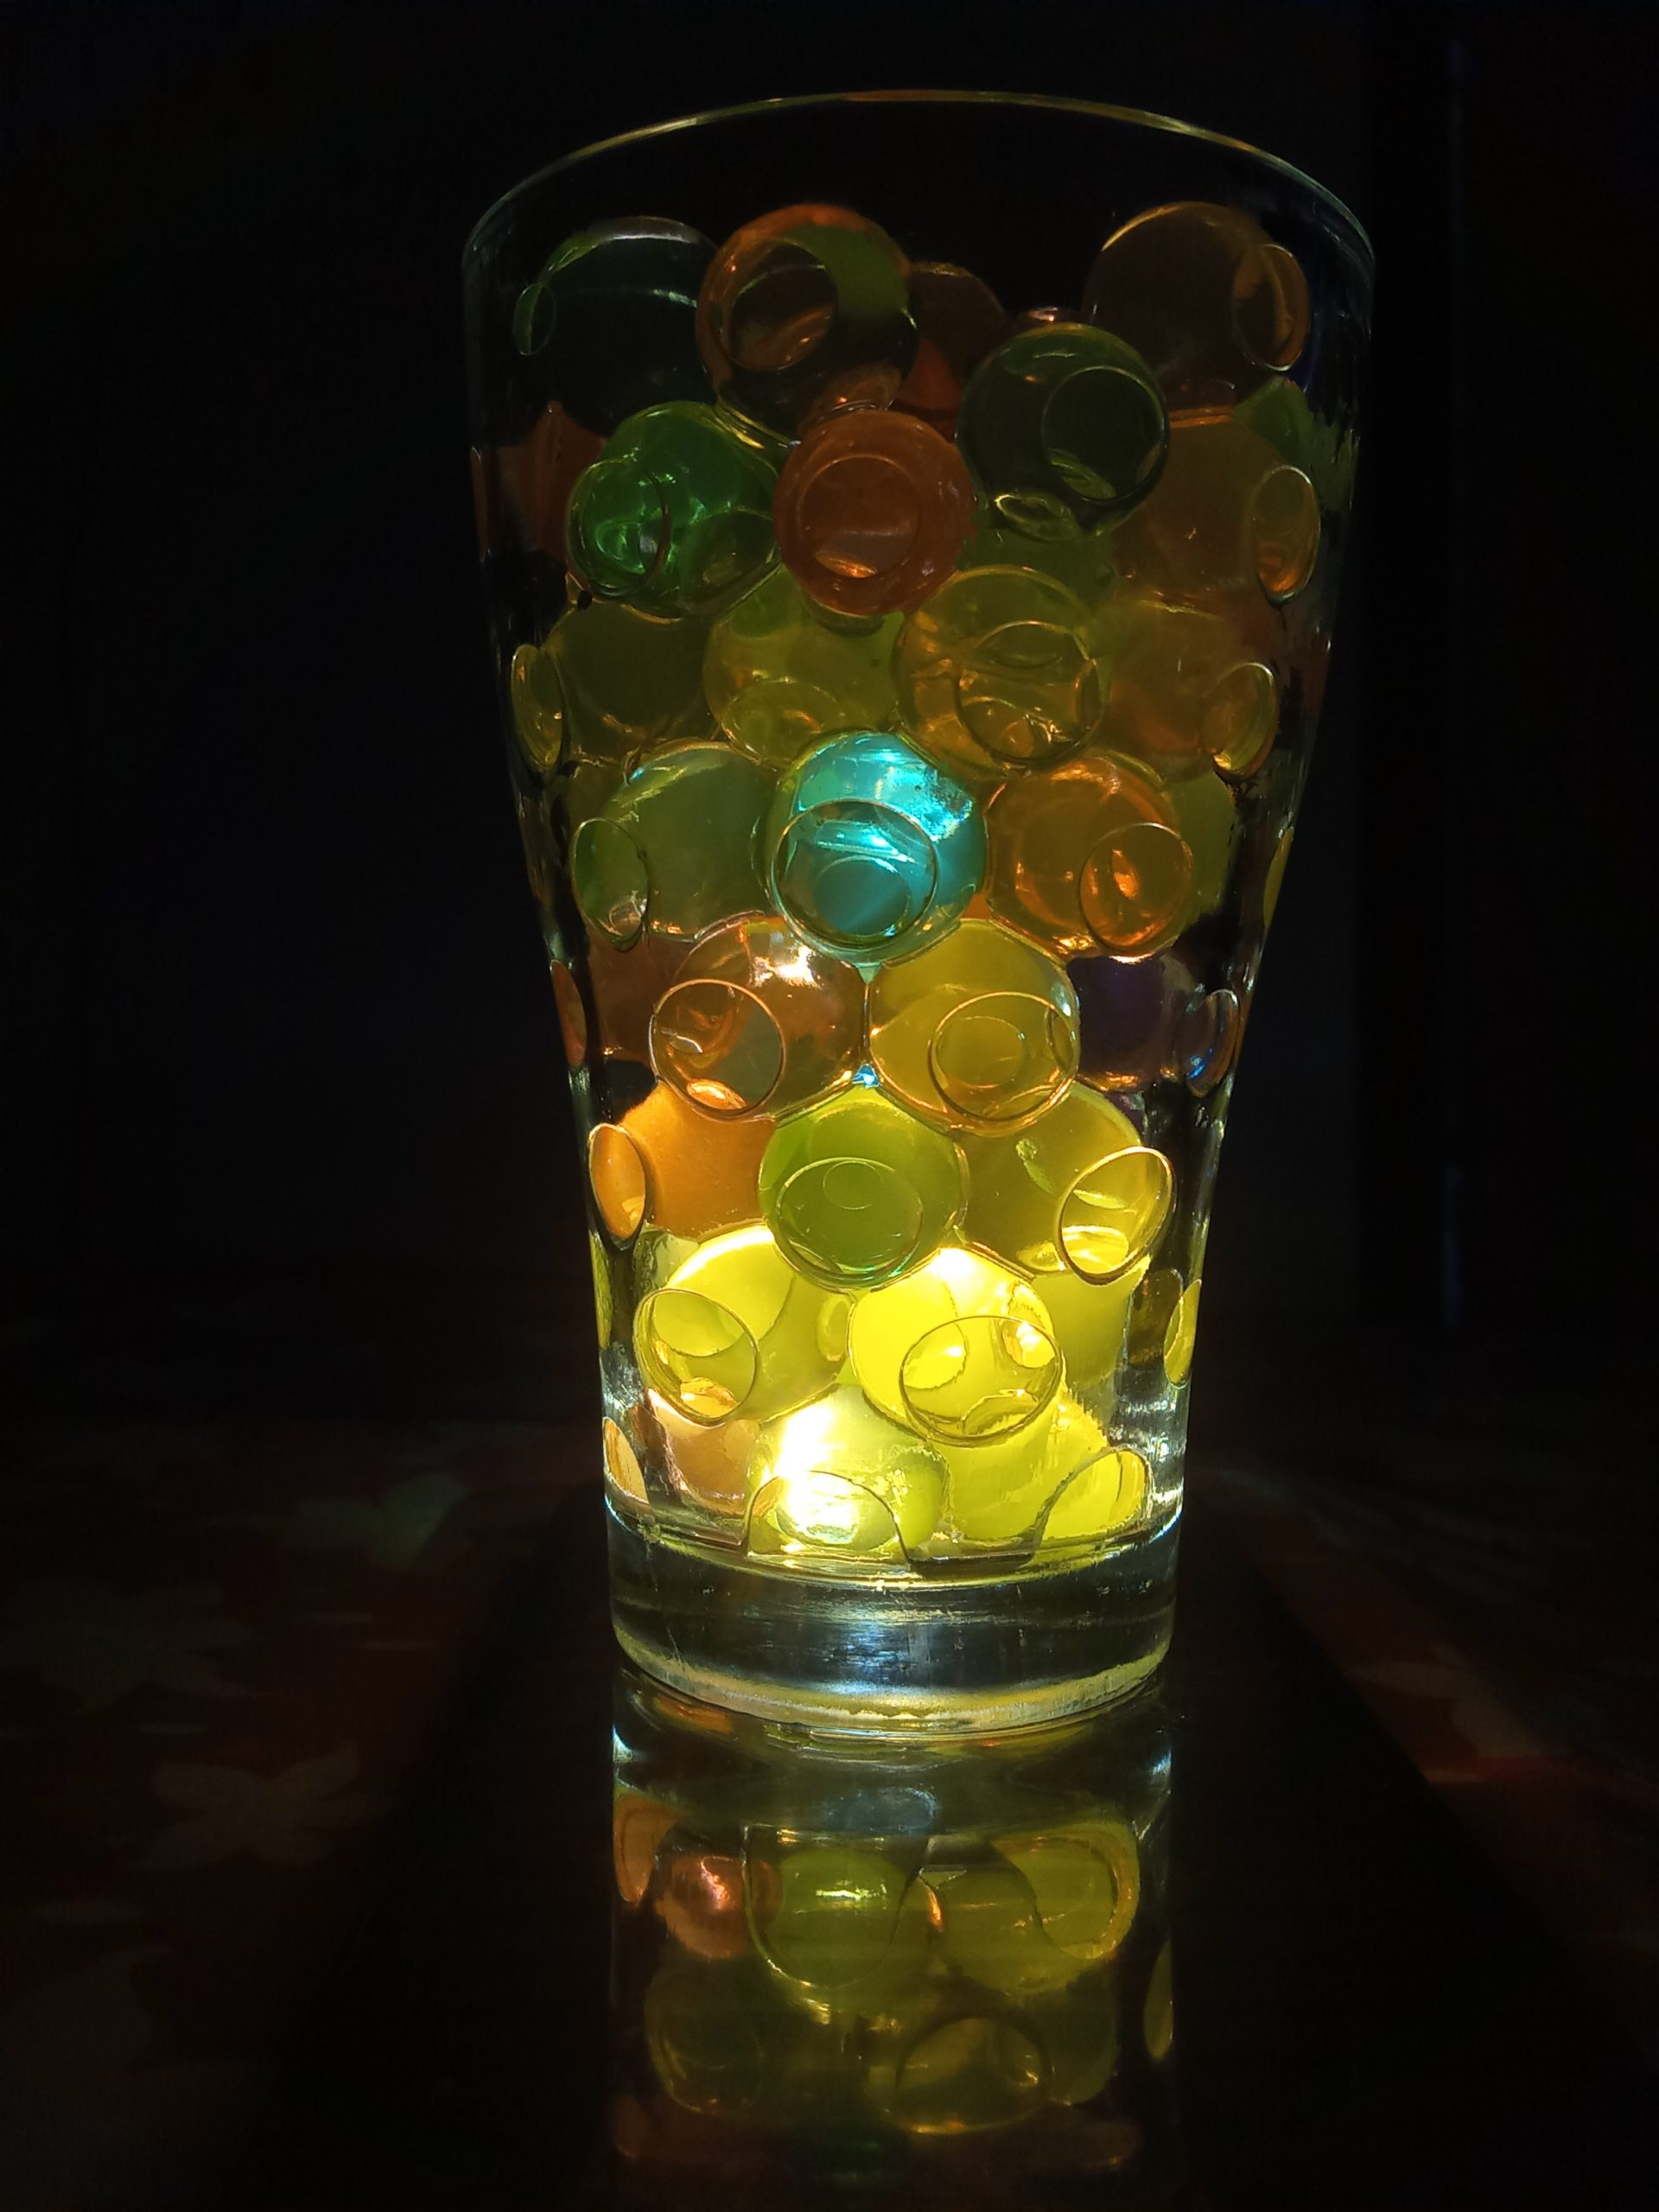 Polymer water balls in a glass